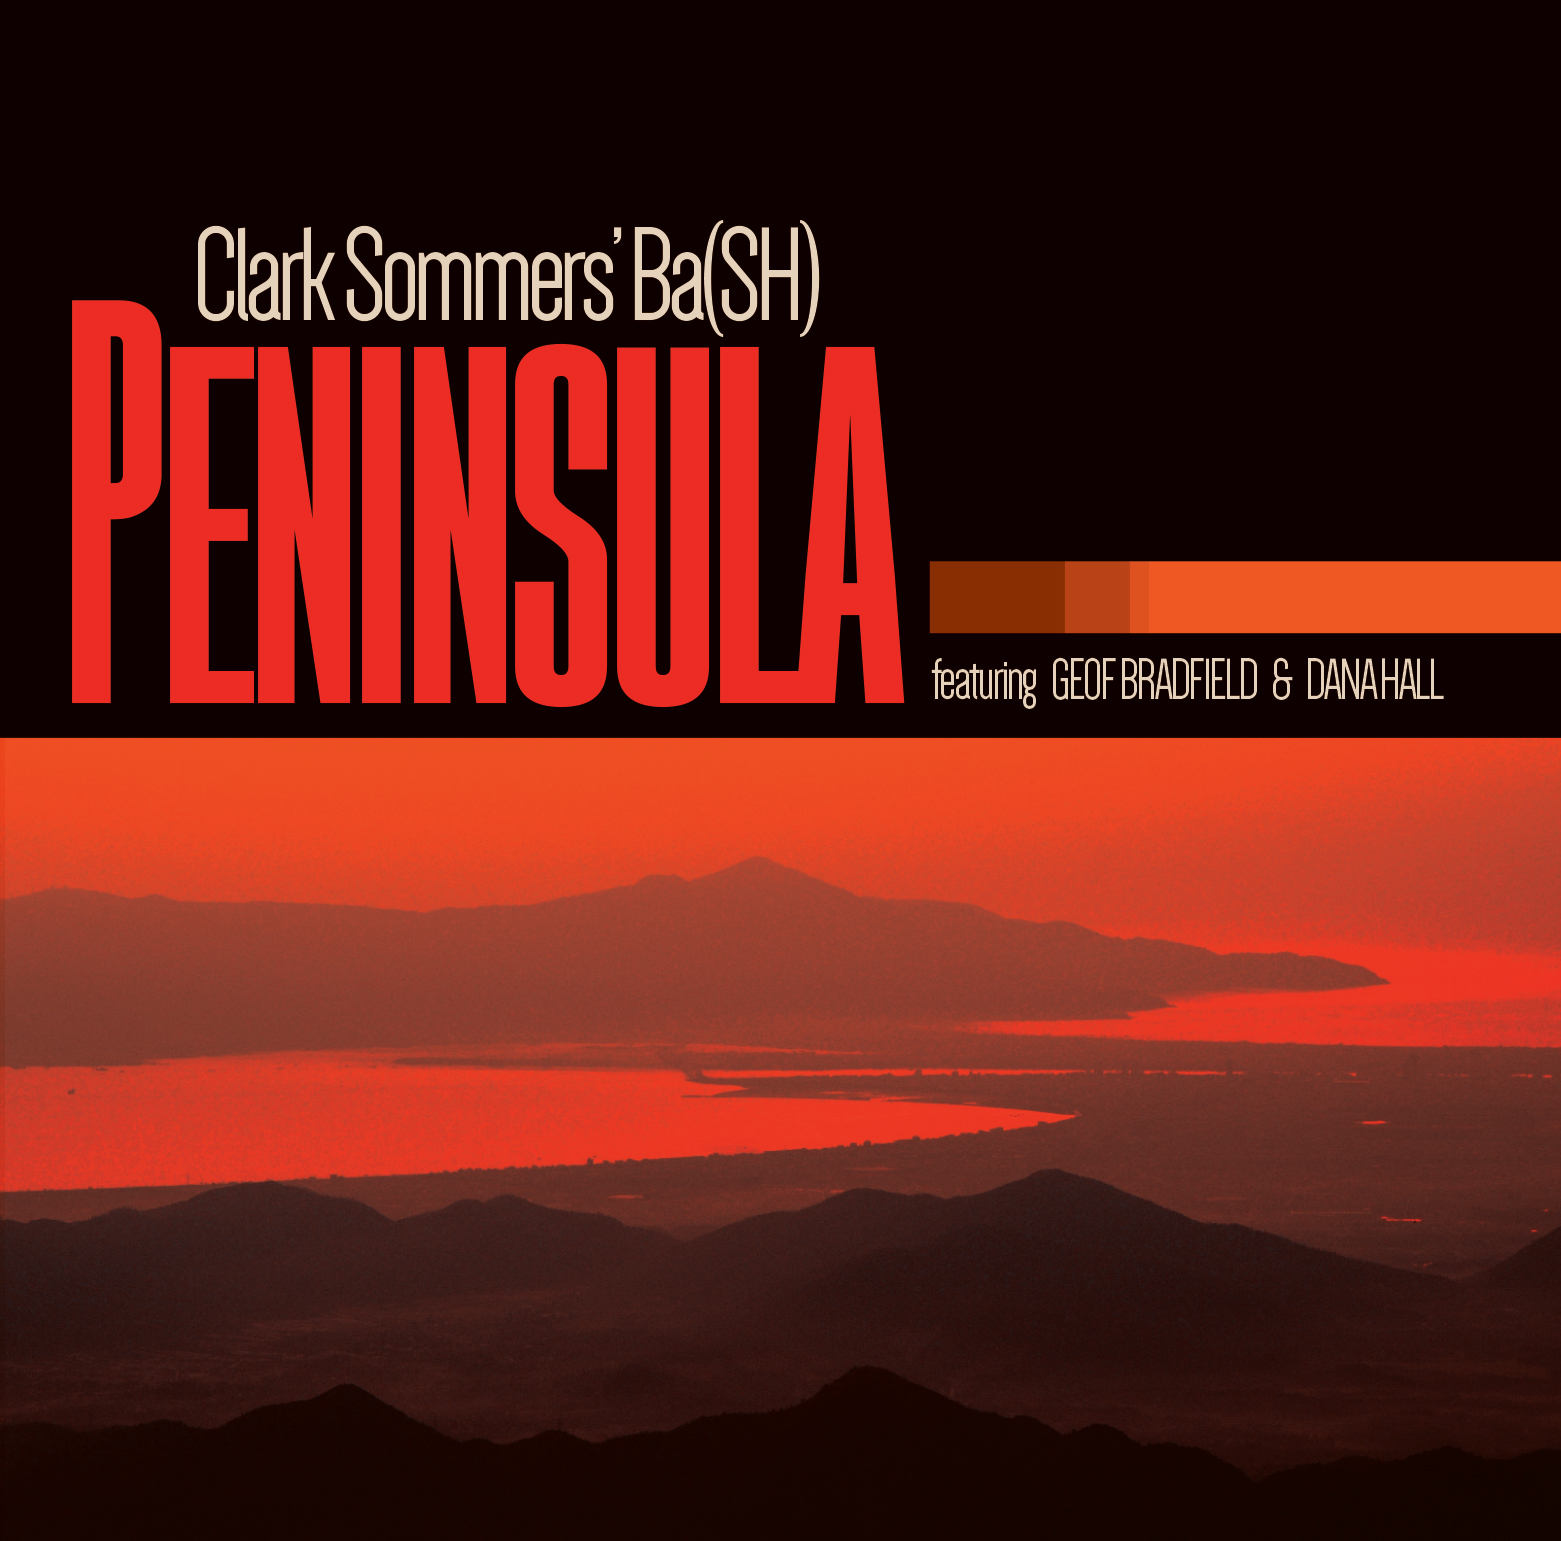 REVIEW: Clark Sommer's Ba(SH): Peninsula (Outside in) – JazzTimes